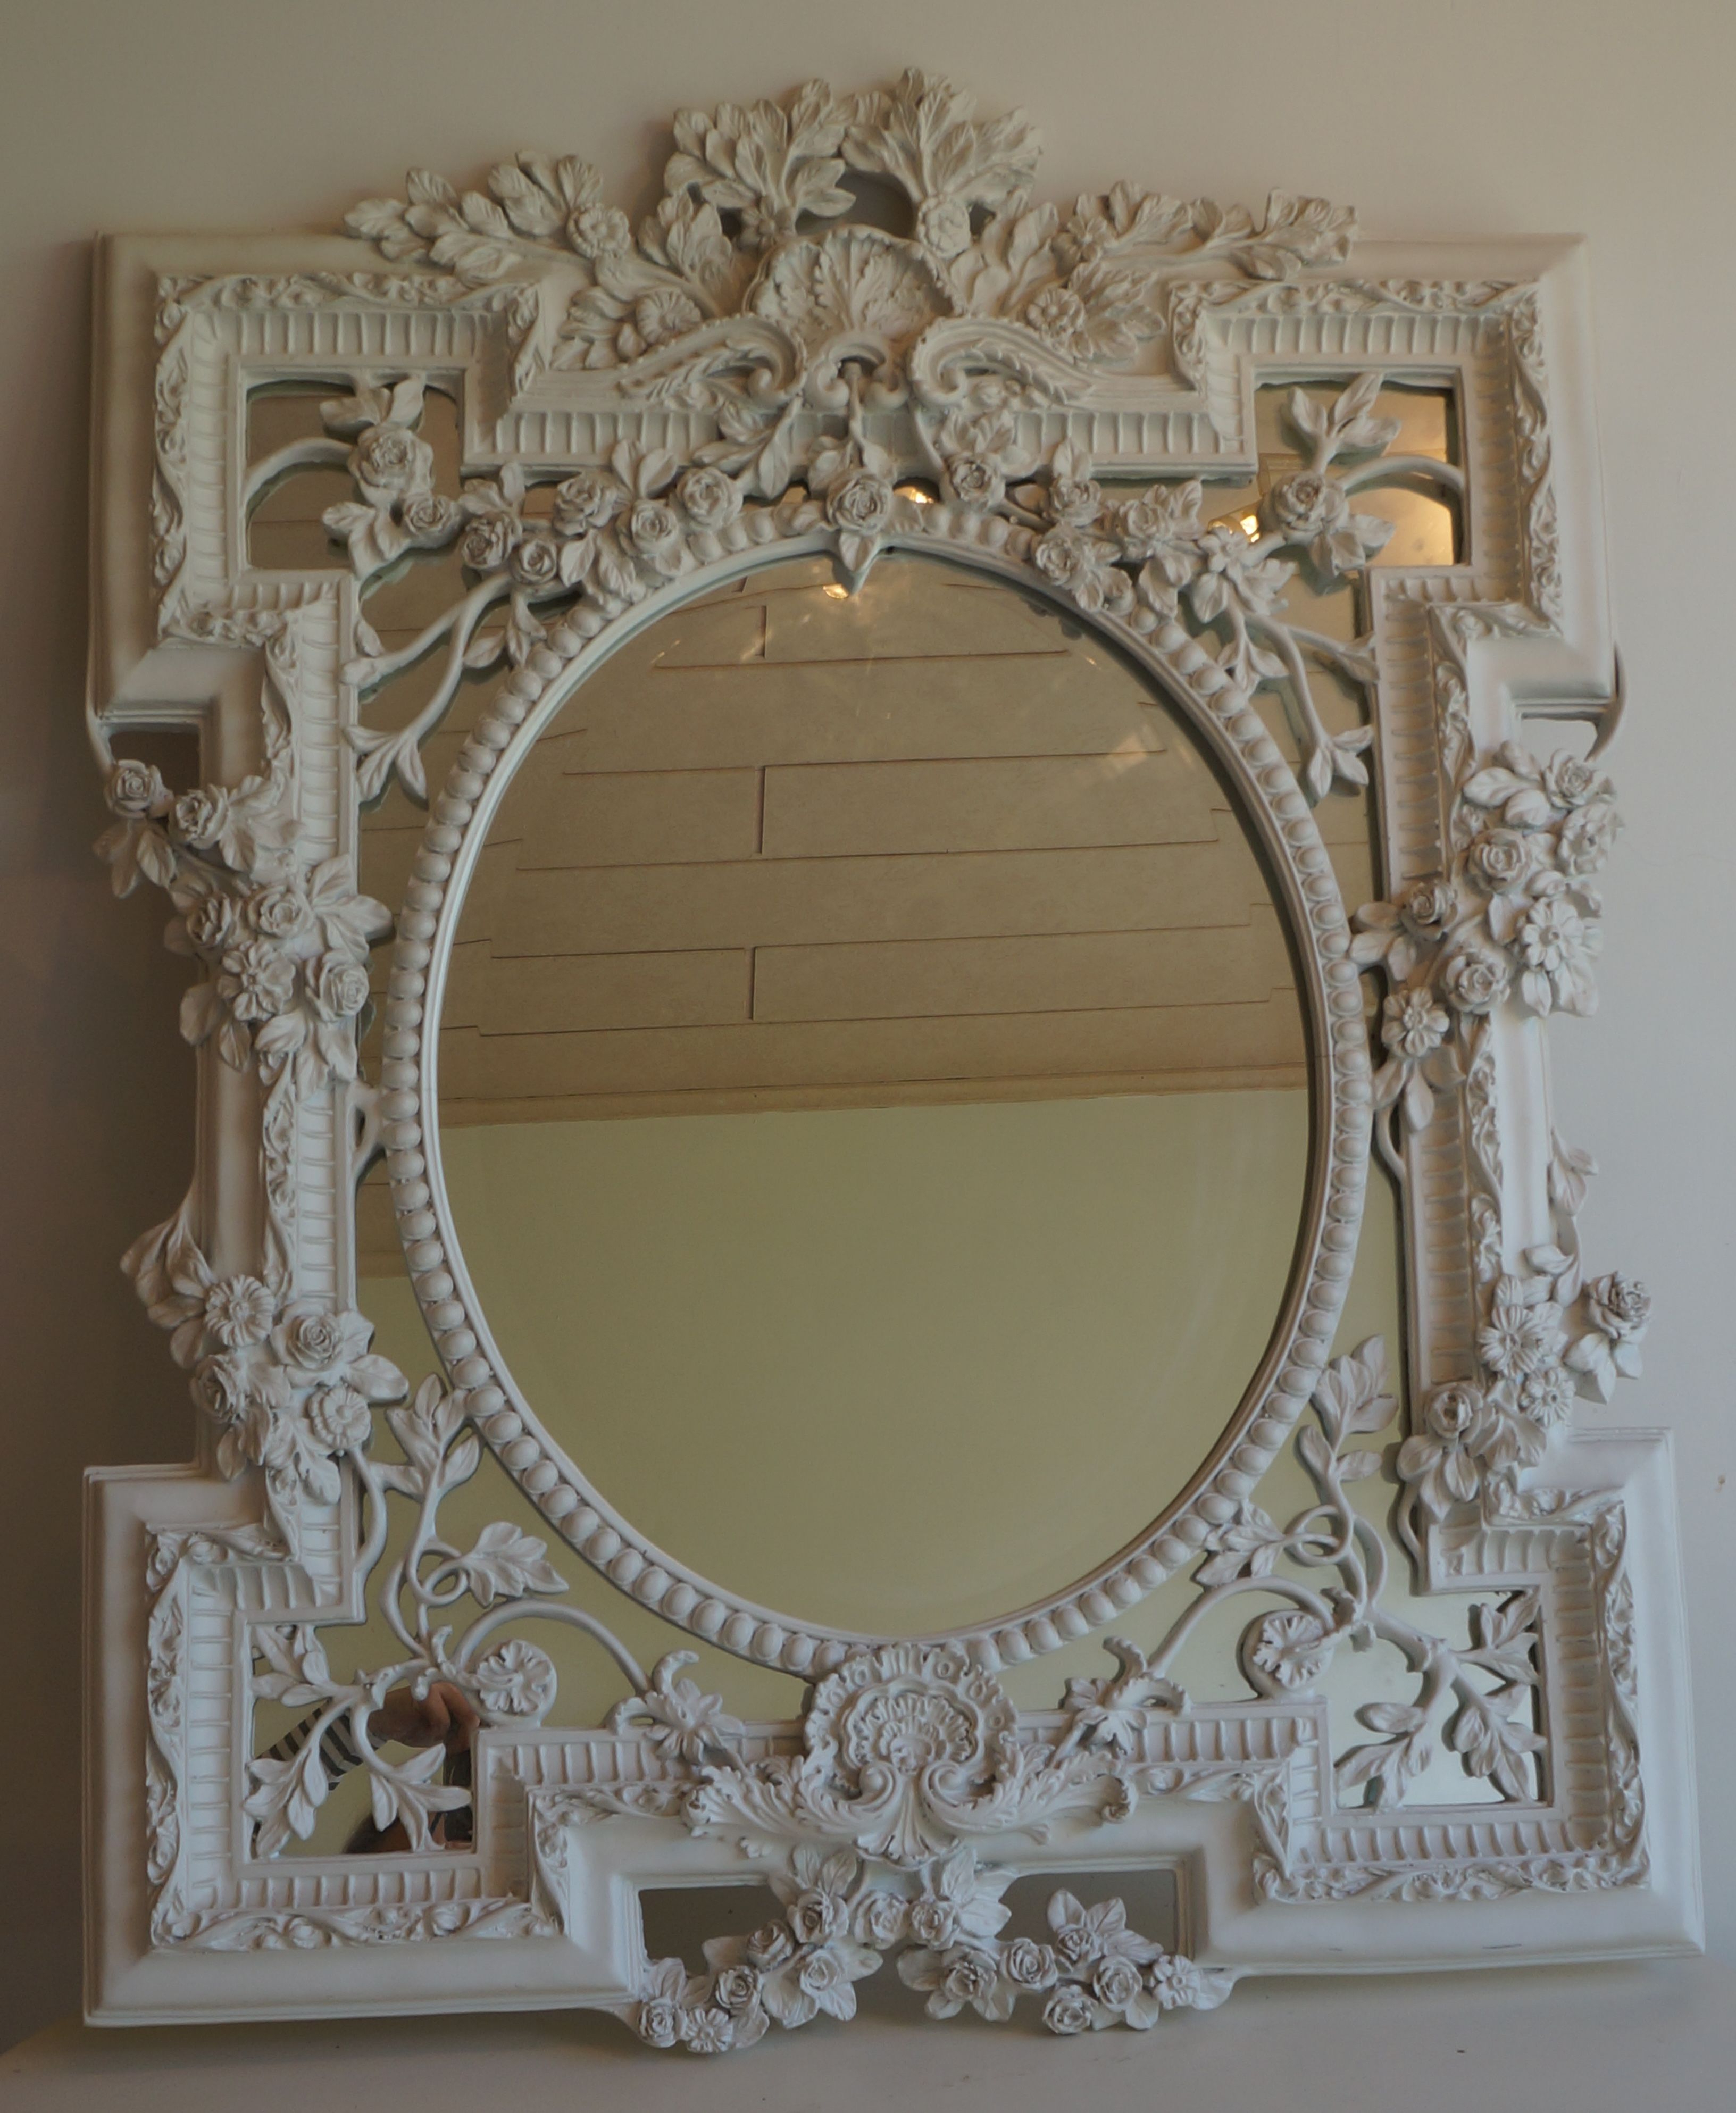 Fashionable Ornate Wall Mirrors Inside Shabbychic White Painted Ornate Relief Decorative Large Wall (View 3 of 20)